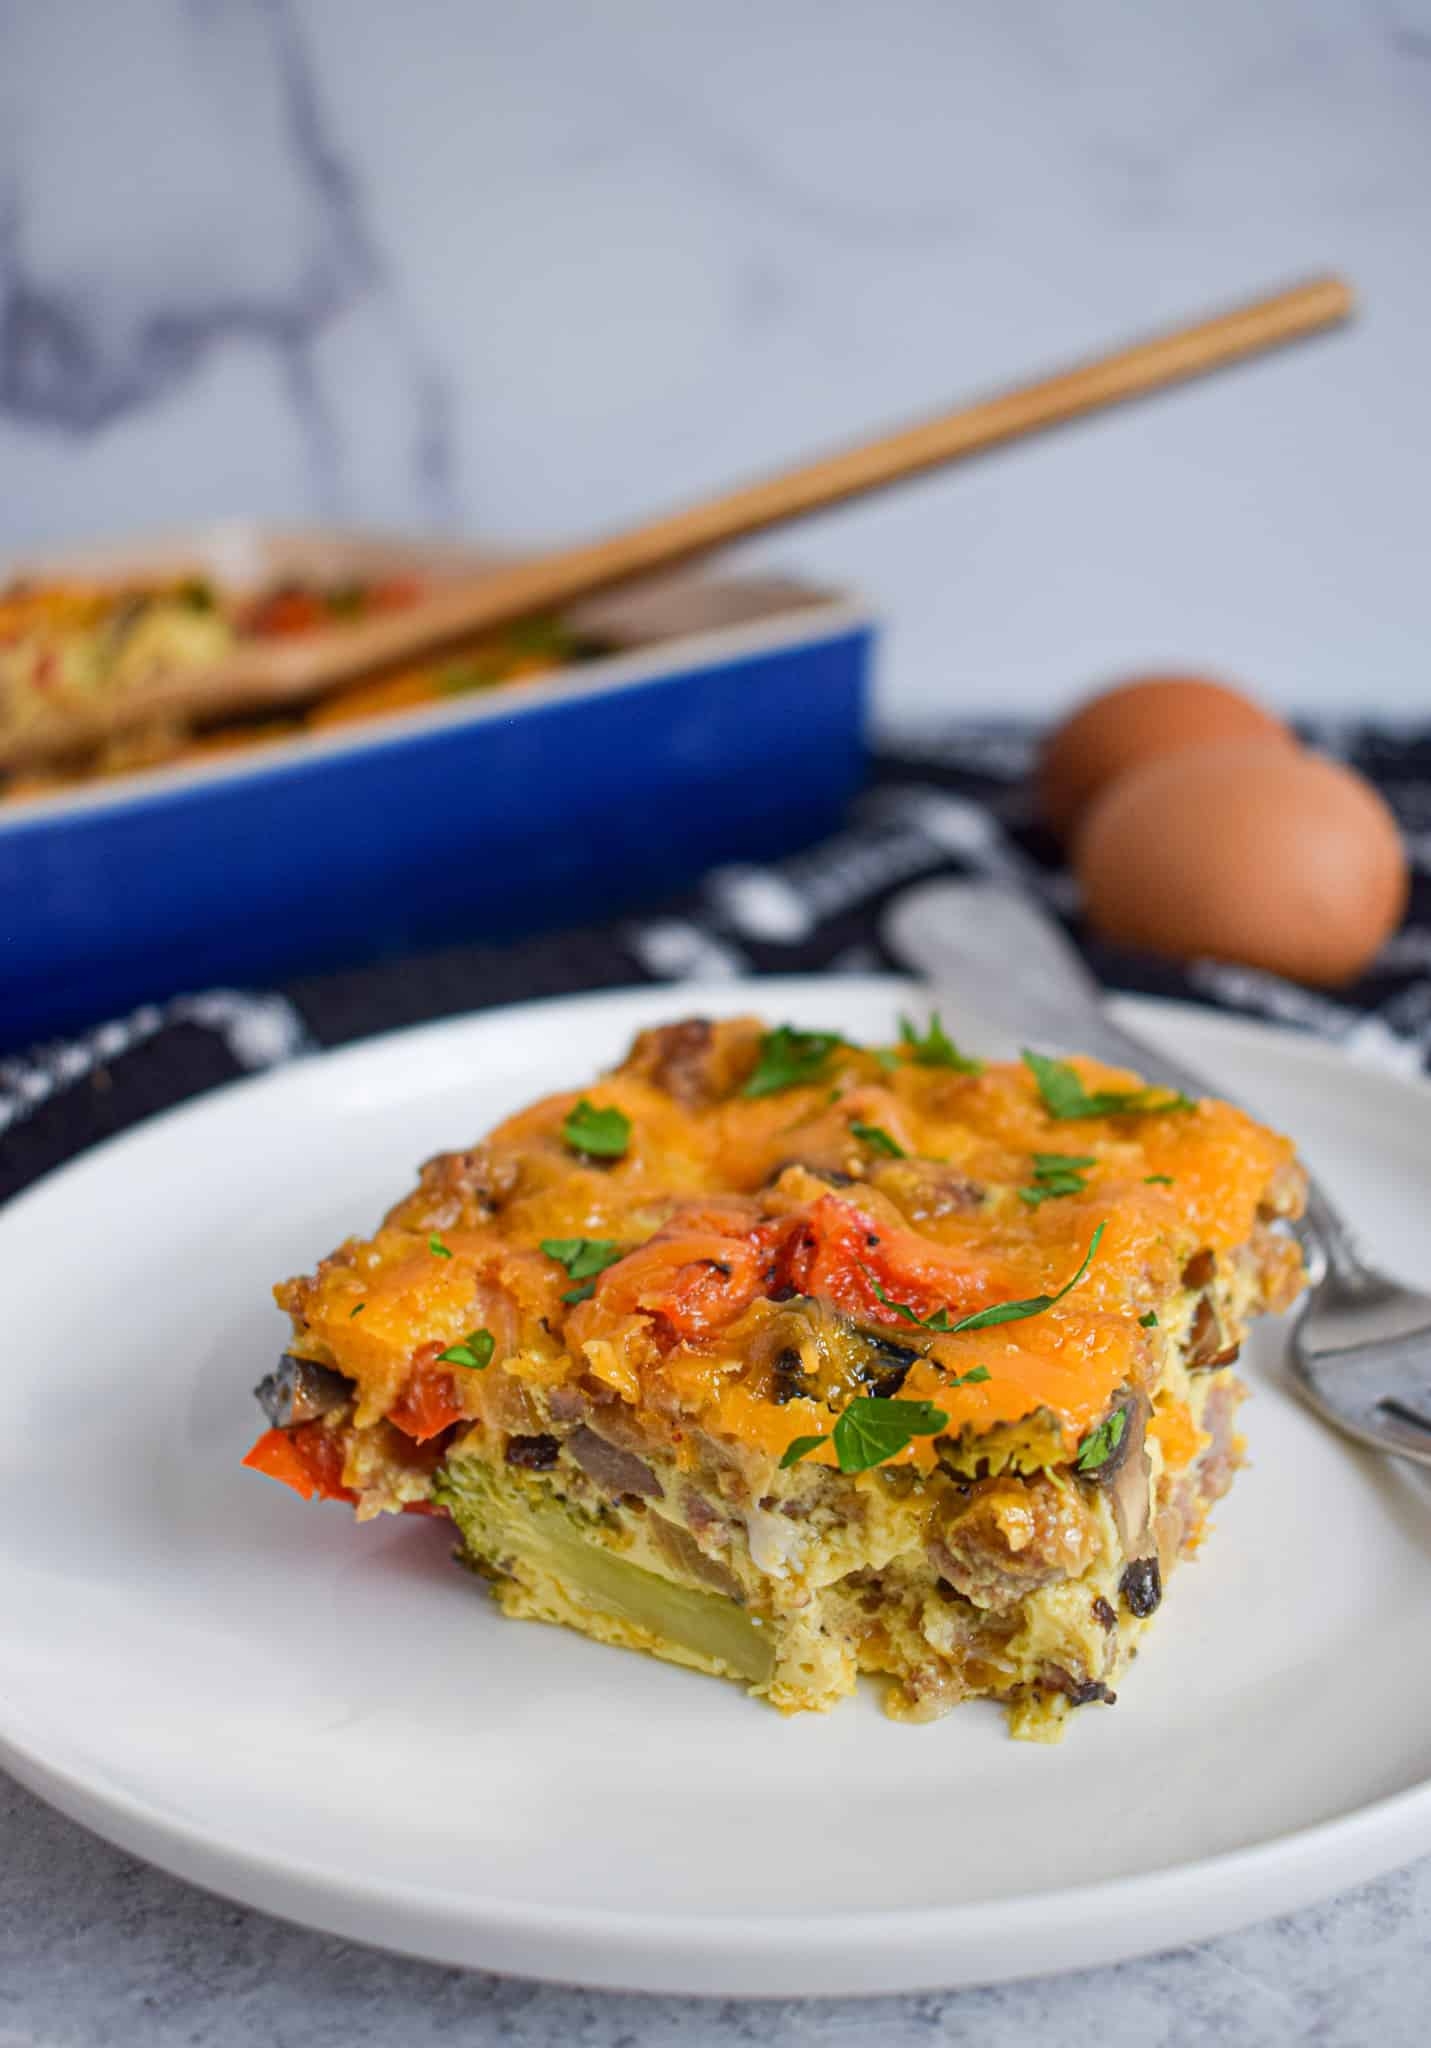 low carb keto breakfast casserole with eggs sausage cheese roasted vegetables easy make ahead